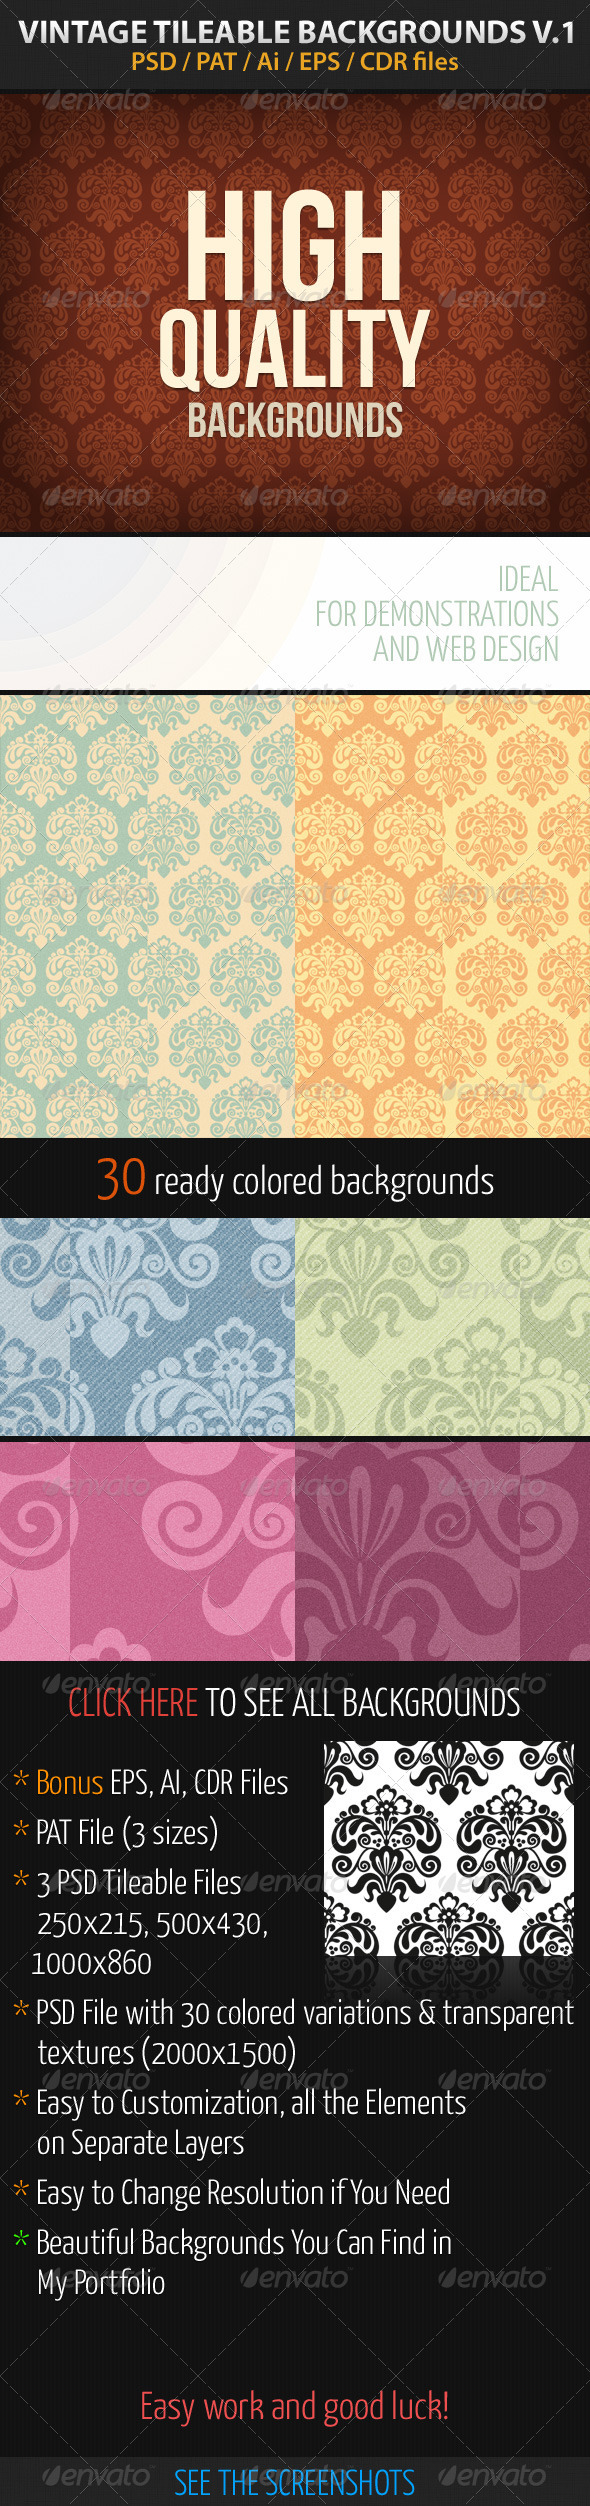 GraphicRiver Vintage Tileable Backgrounds v1 2795945